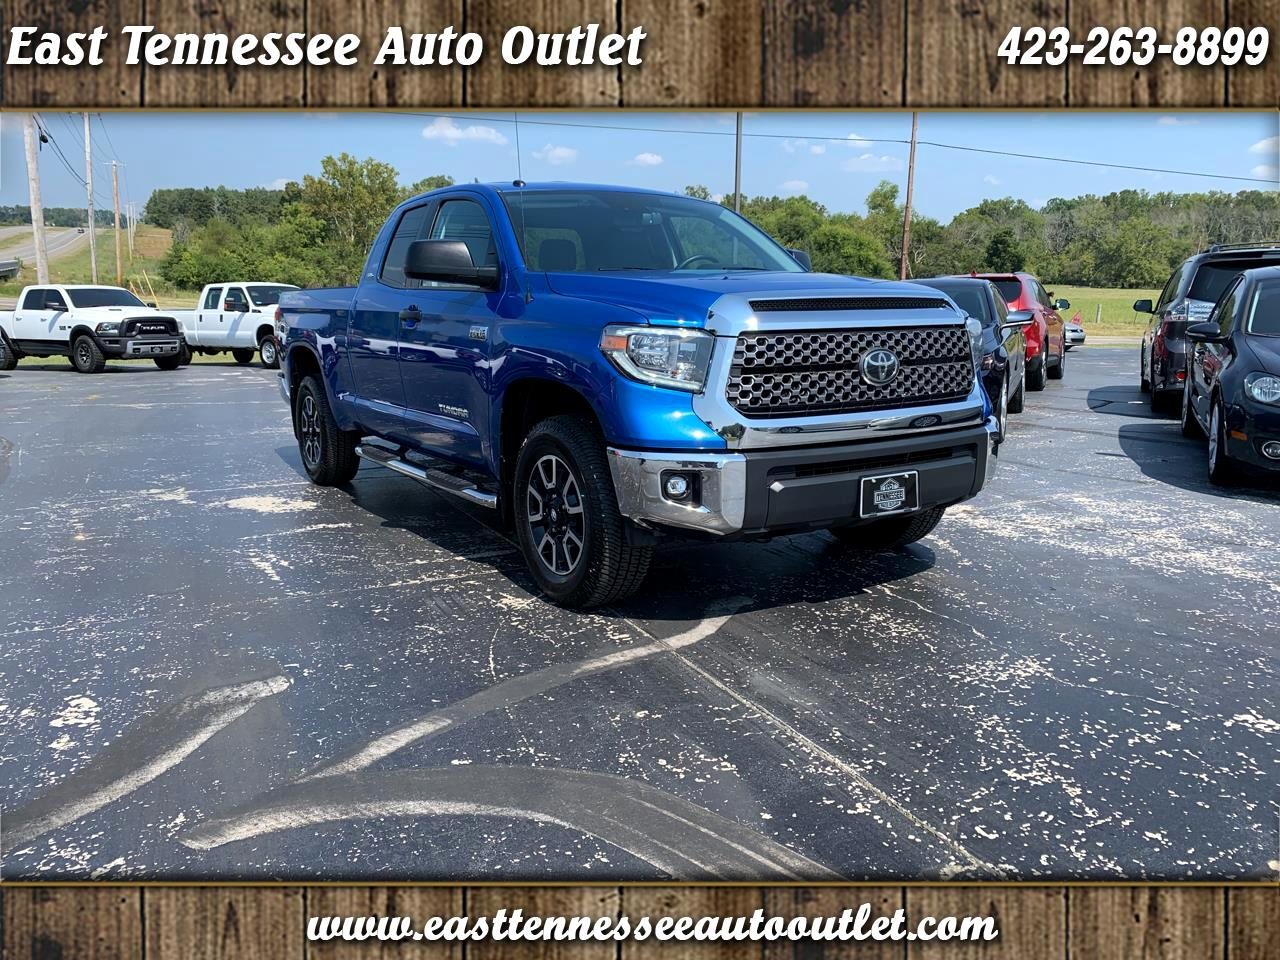 2018 Toyota Tundra 4WD SR5 Double Cab 6.5' Bed 5.7L (Natl)